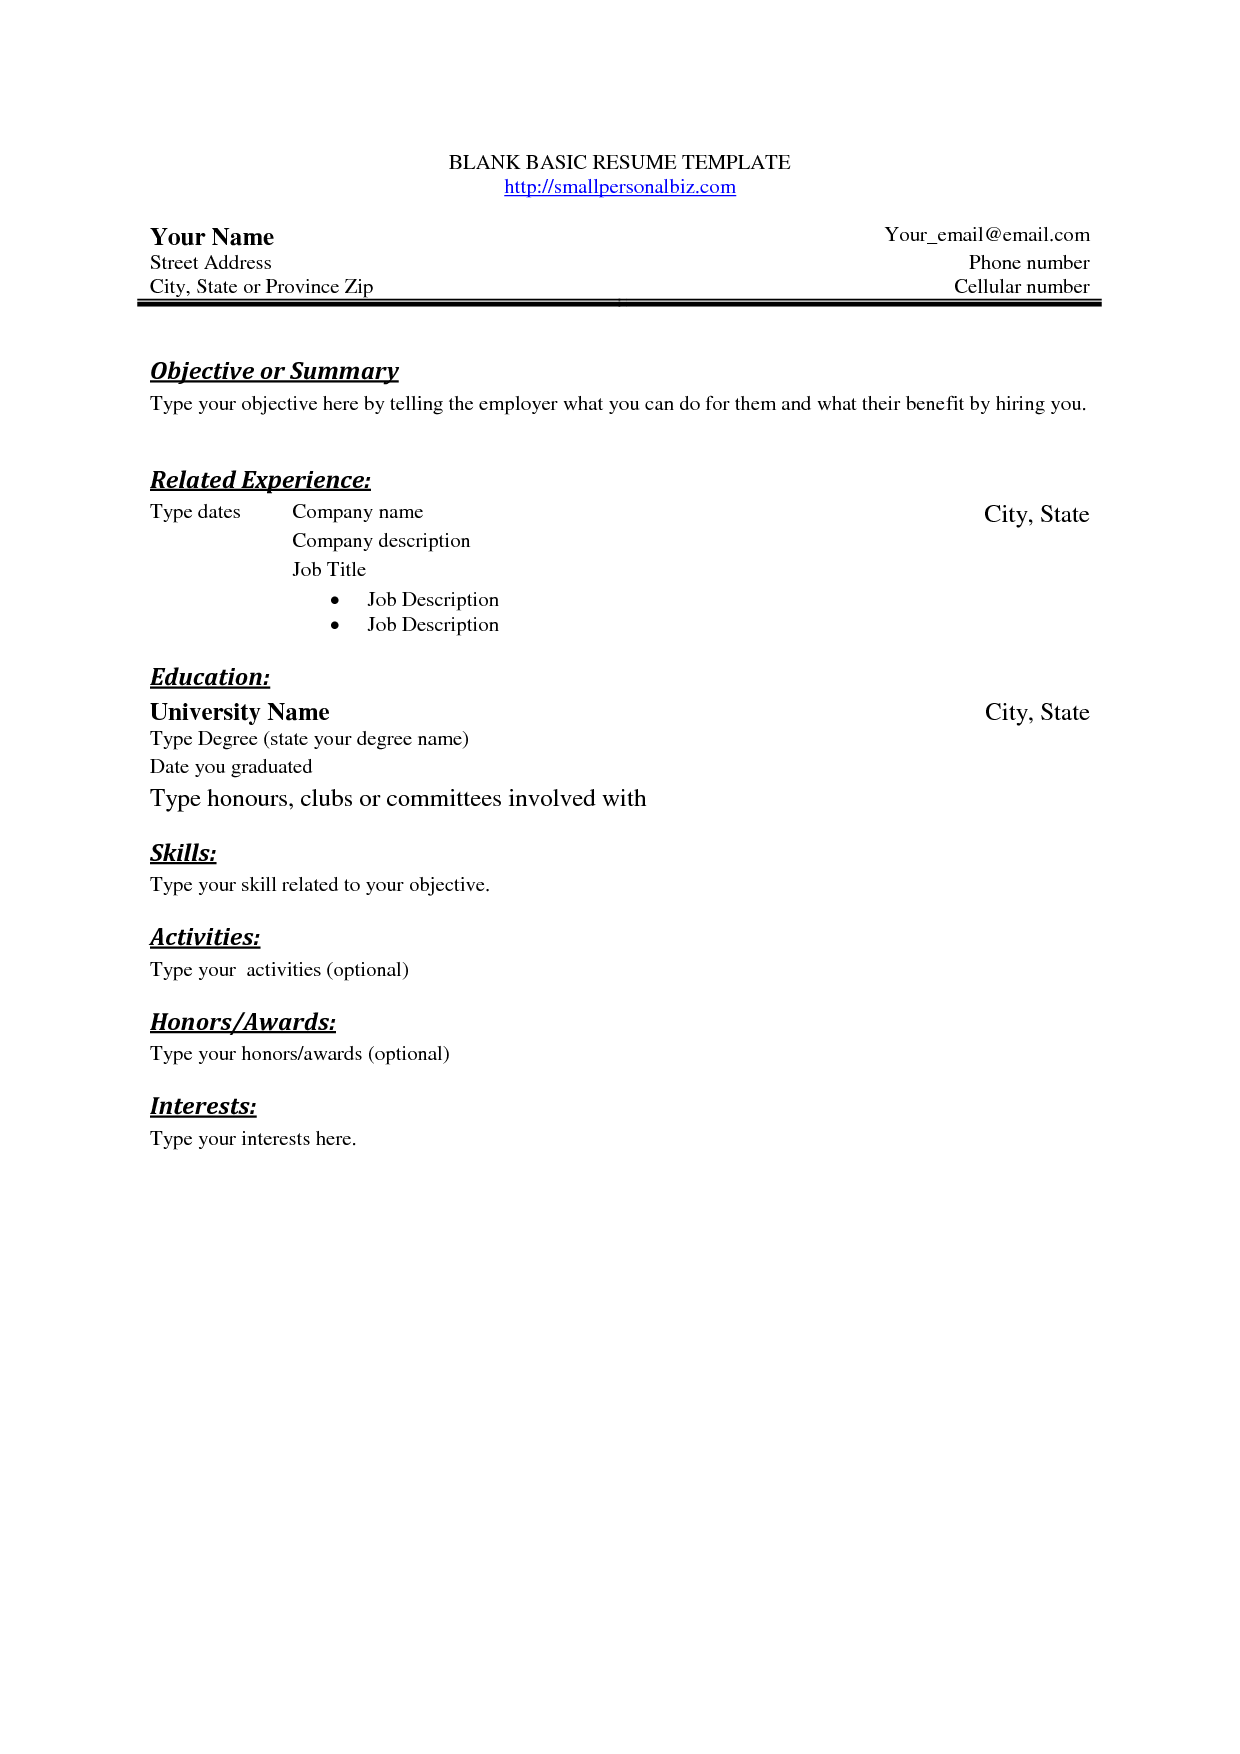 Stylist And Luxury Simple Resume Layout 10 Free Basic Blank Resume Template    Resume Example  Blank Resume Template